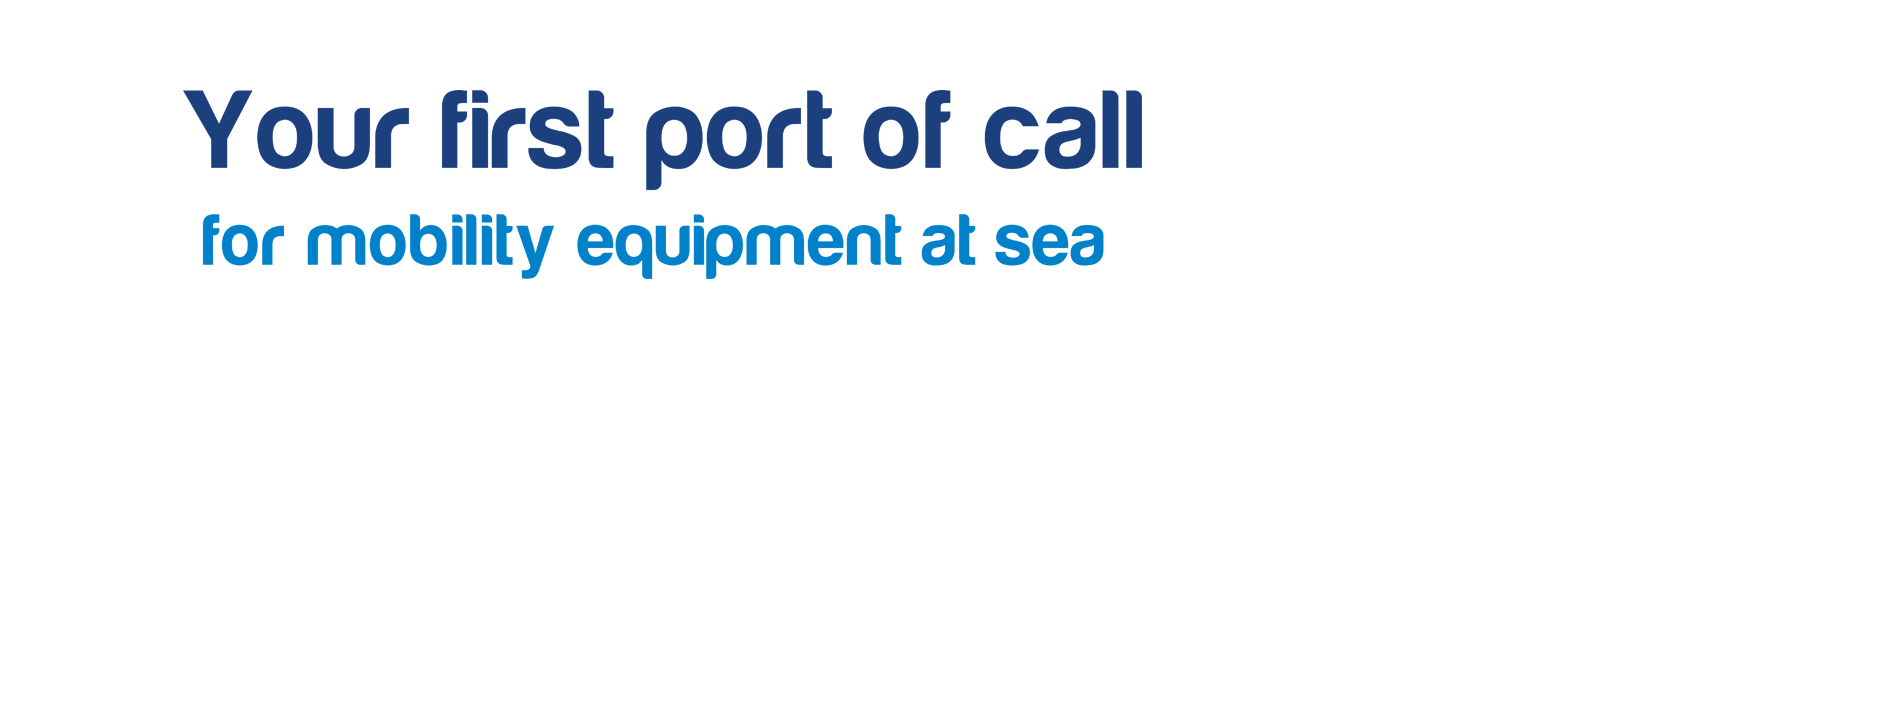 Your first port of call for mobility equipment hire at sea